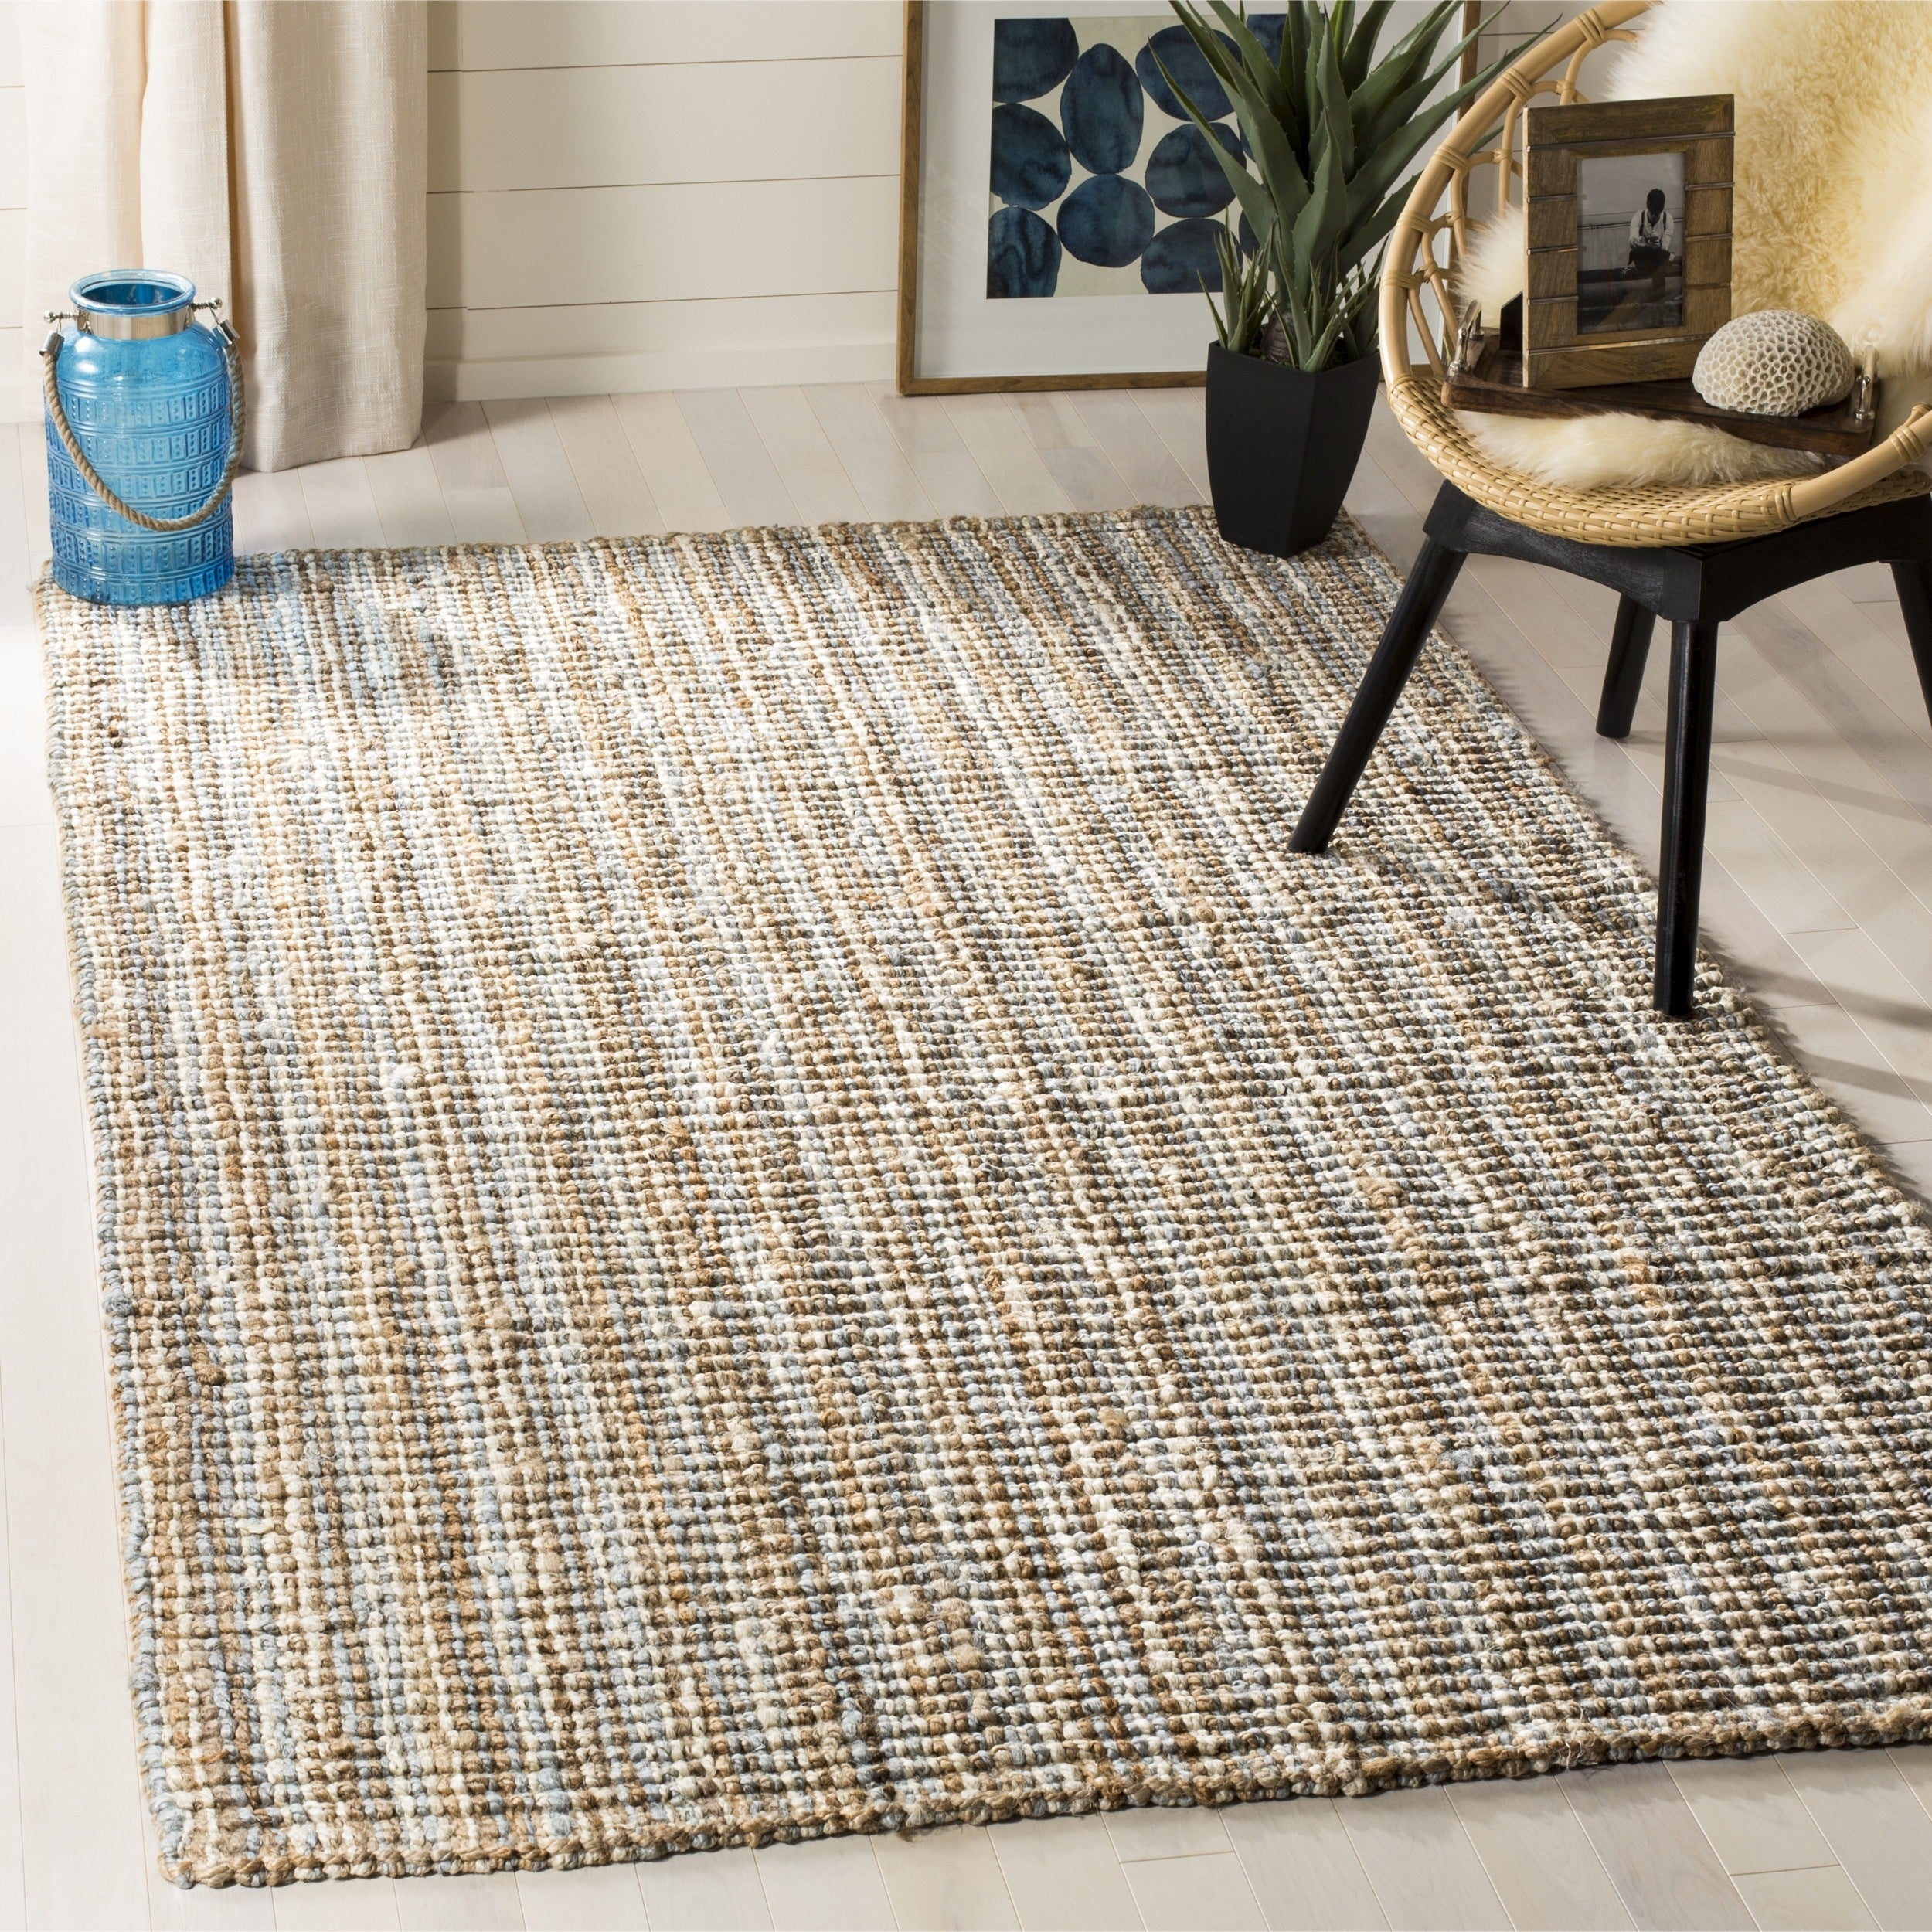 Safavieh Casual Natural Fiber Hand Woven Grey Chunky Thick Jute Rug 3 X 5 Free Shipping Today Com 9608961